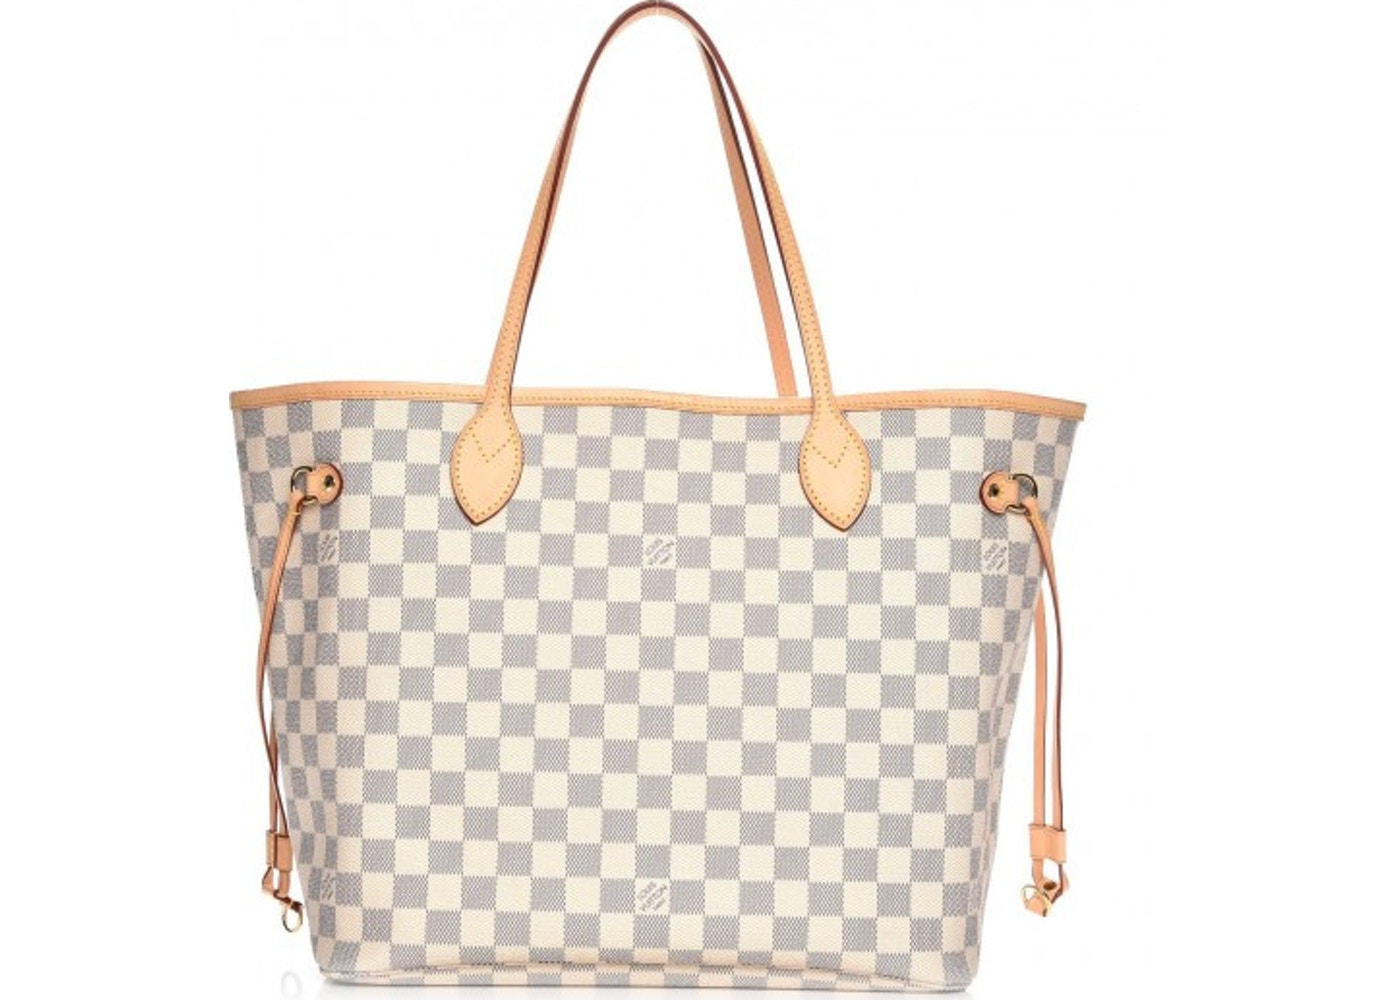 71513291c03 Buy   Sell Louis Vuitton Neverfull Handbags - Price Premium